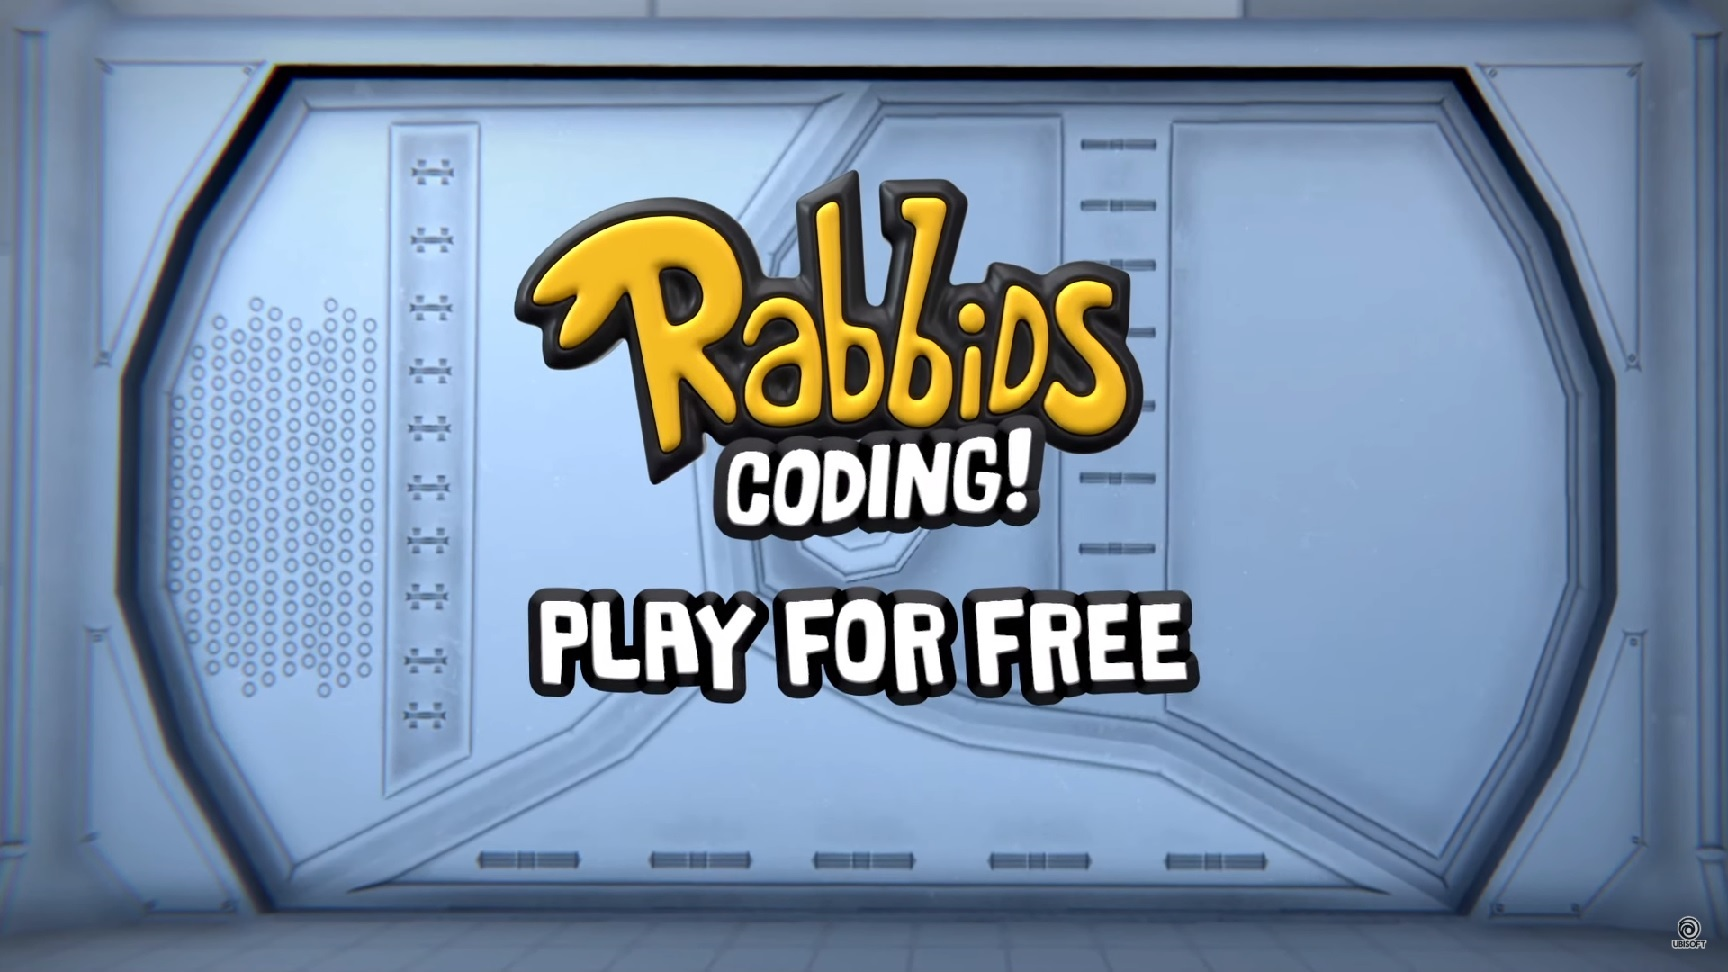 Ubisoft is giving away Rabbids Coding for free | Indie ...